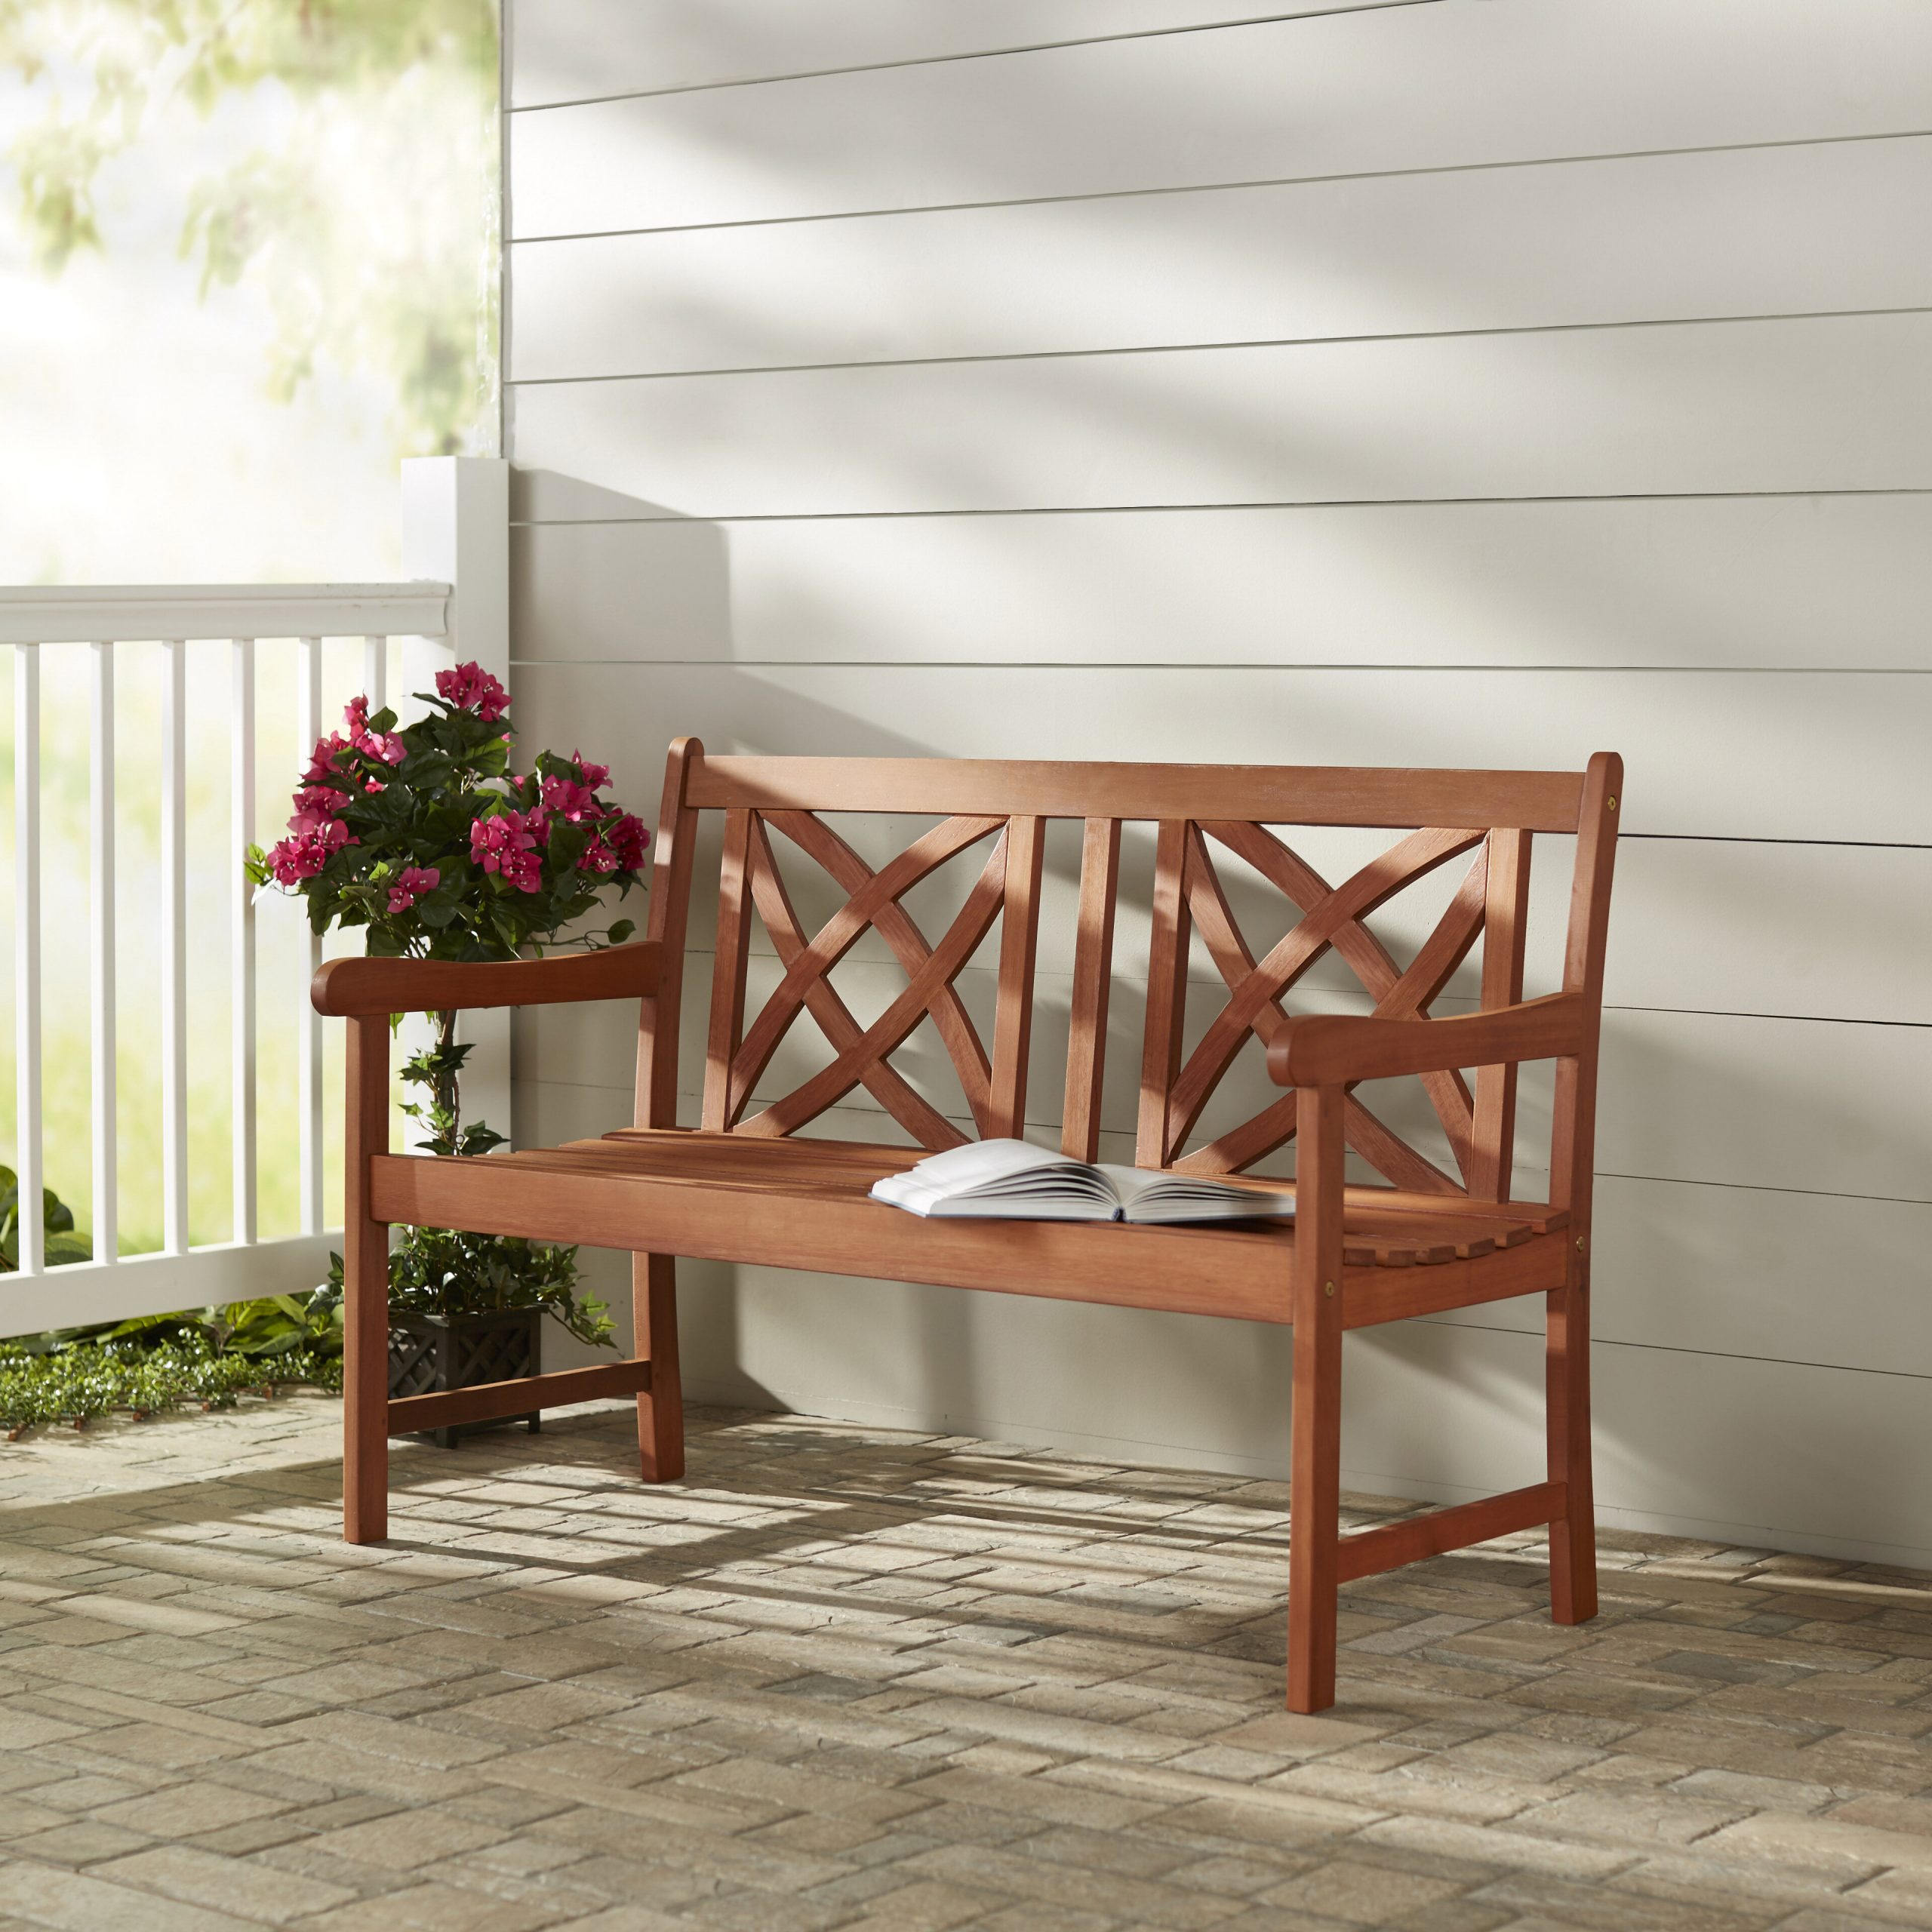 Featured Image of Maliyah Wooden Garden Benches